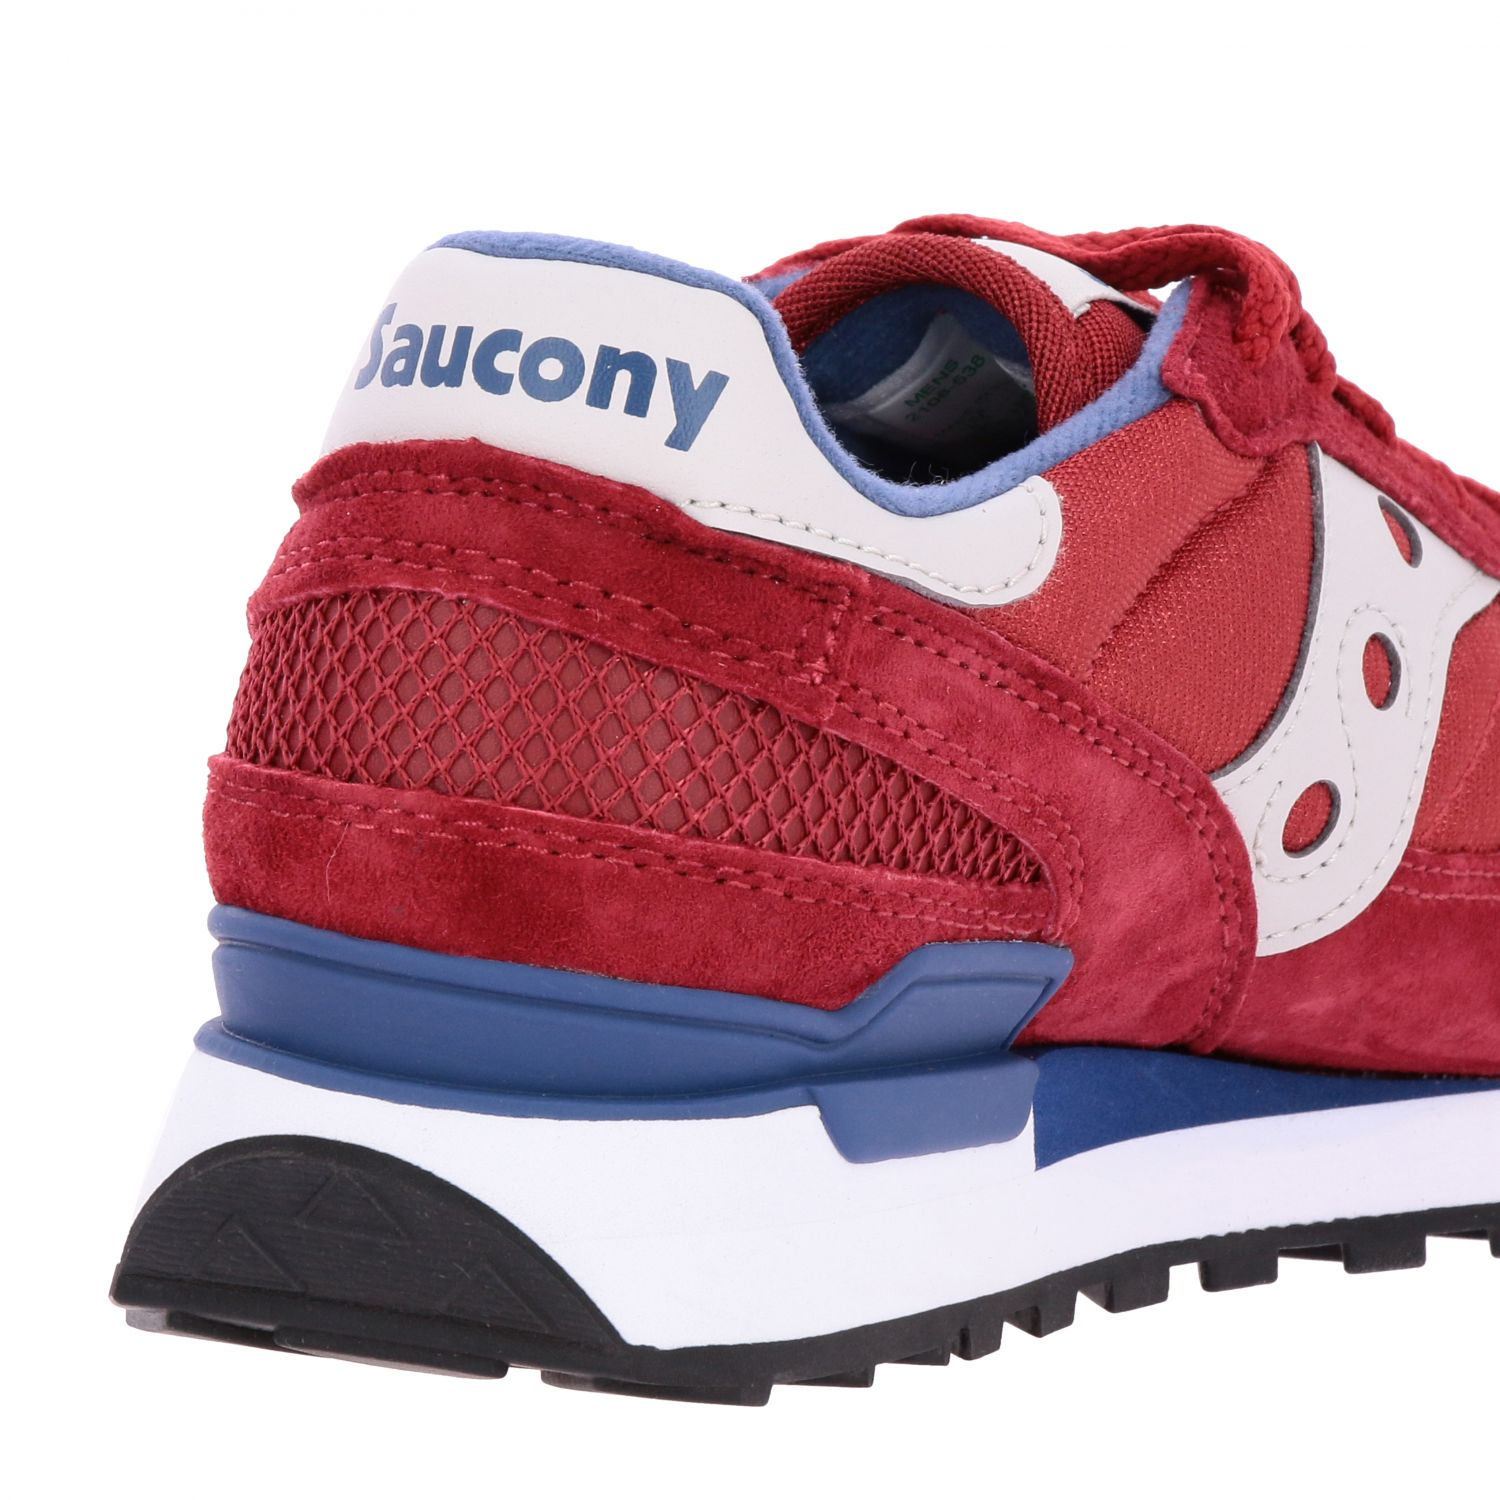 Trainers men Saucony red 5